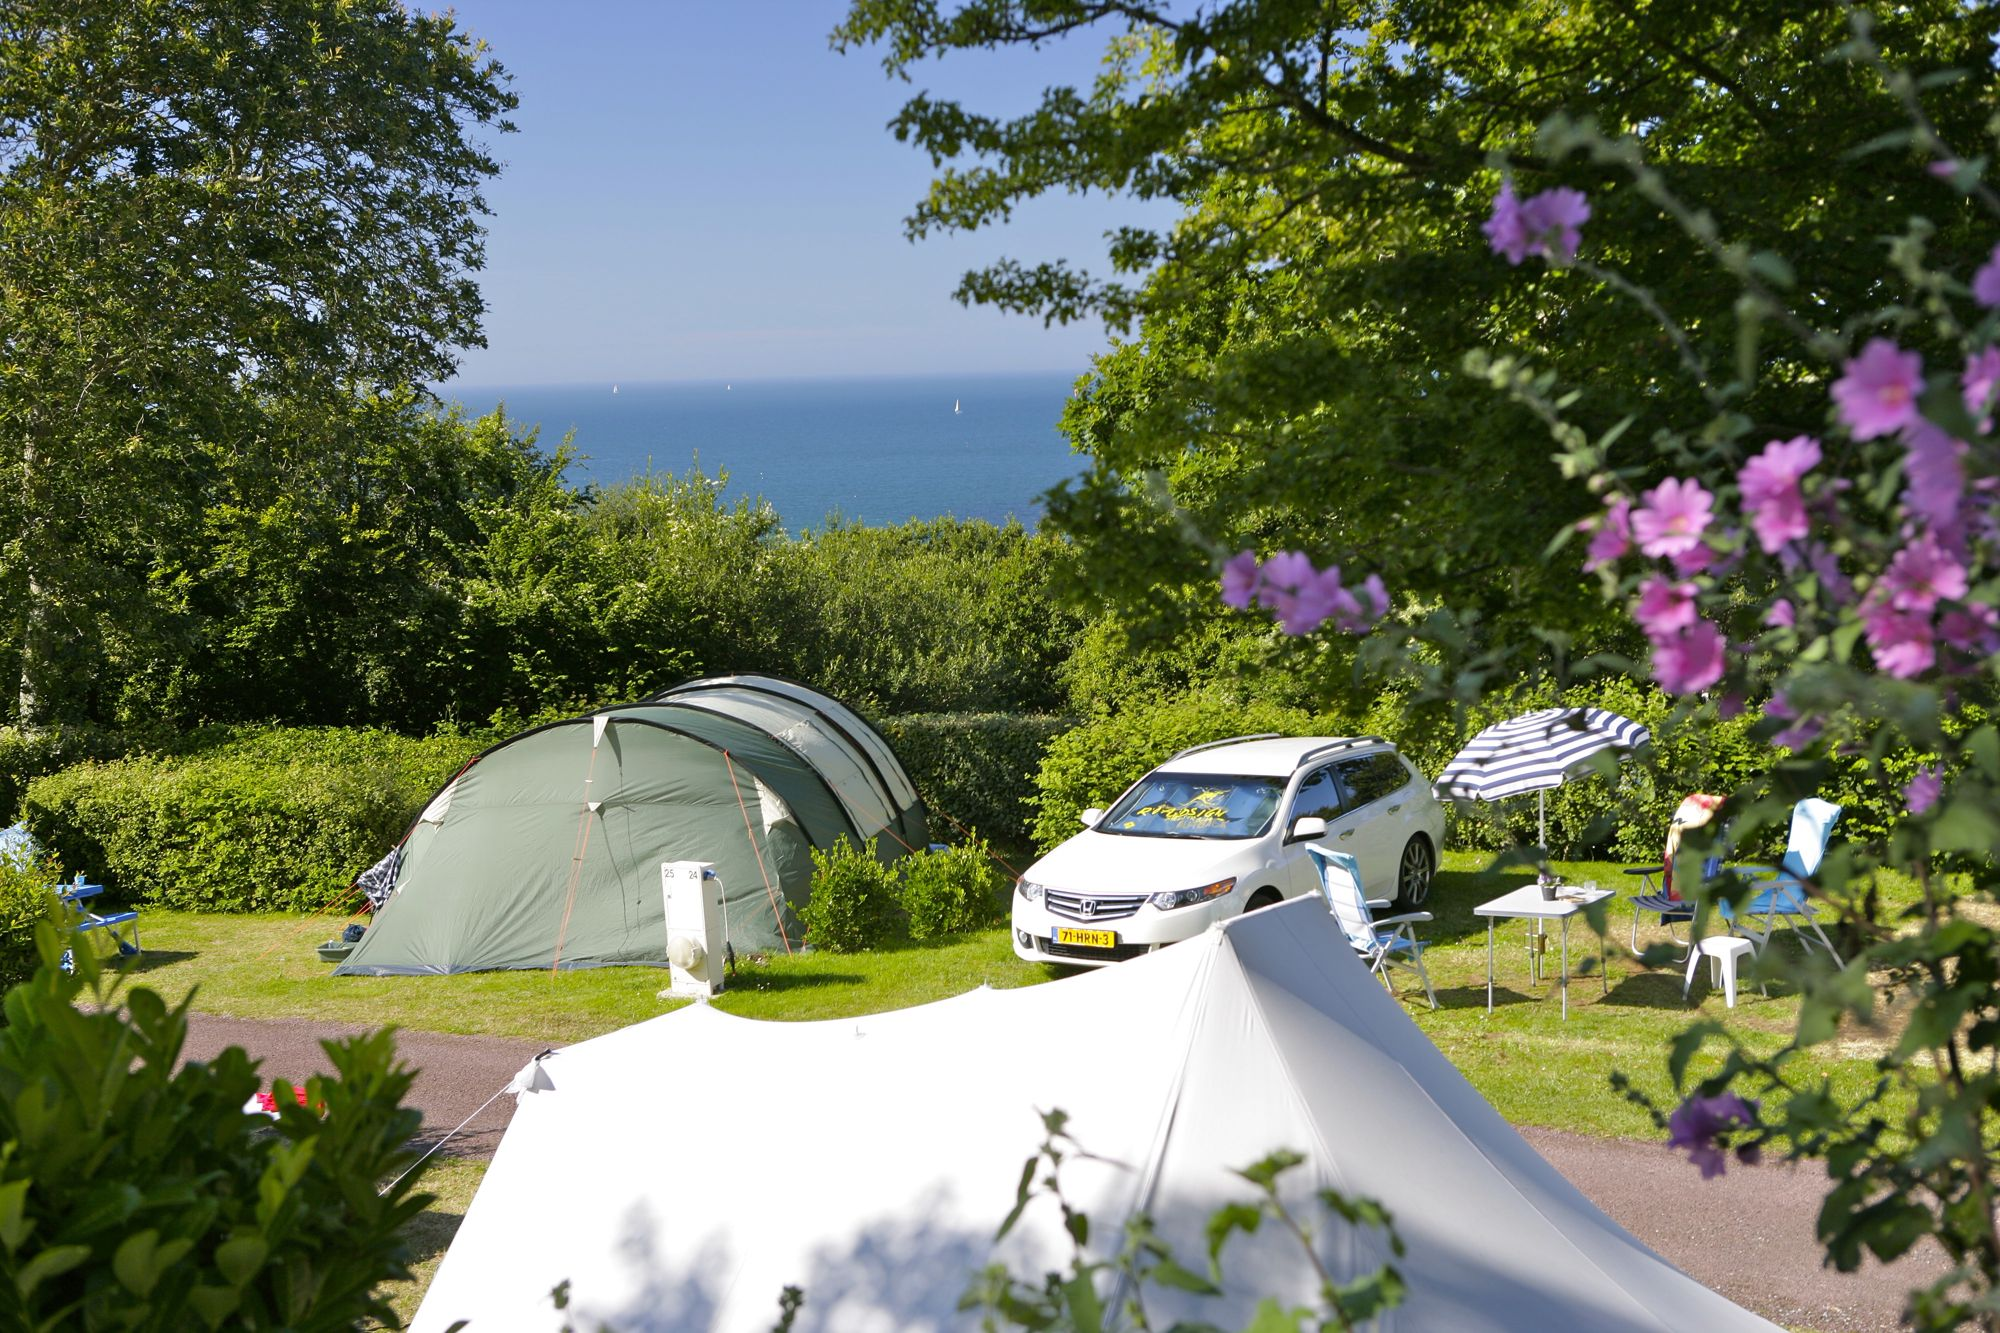 Campsites in Manche